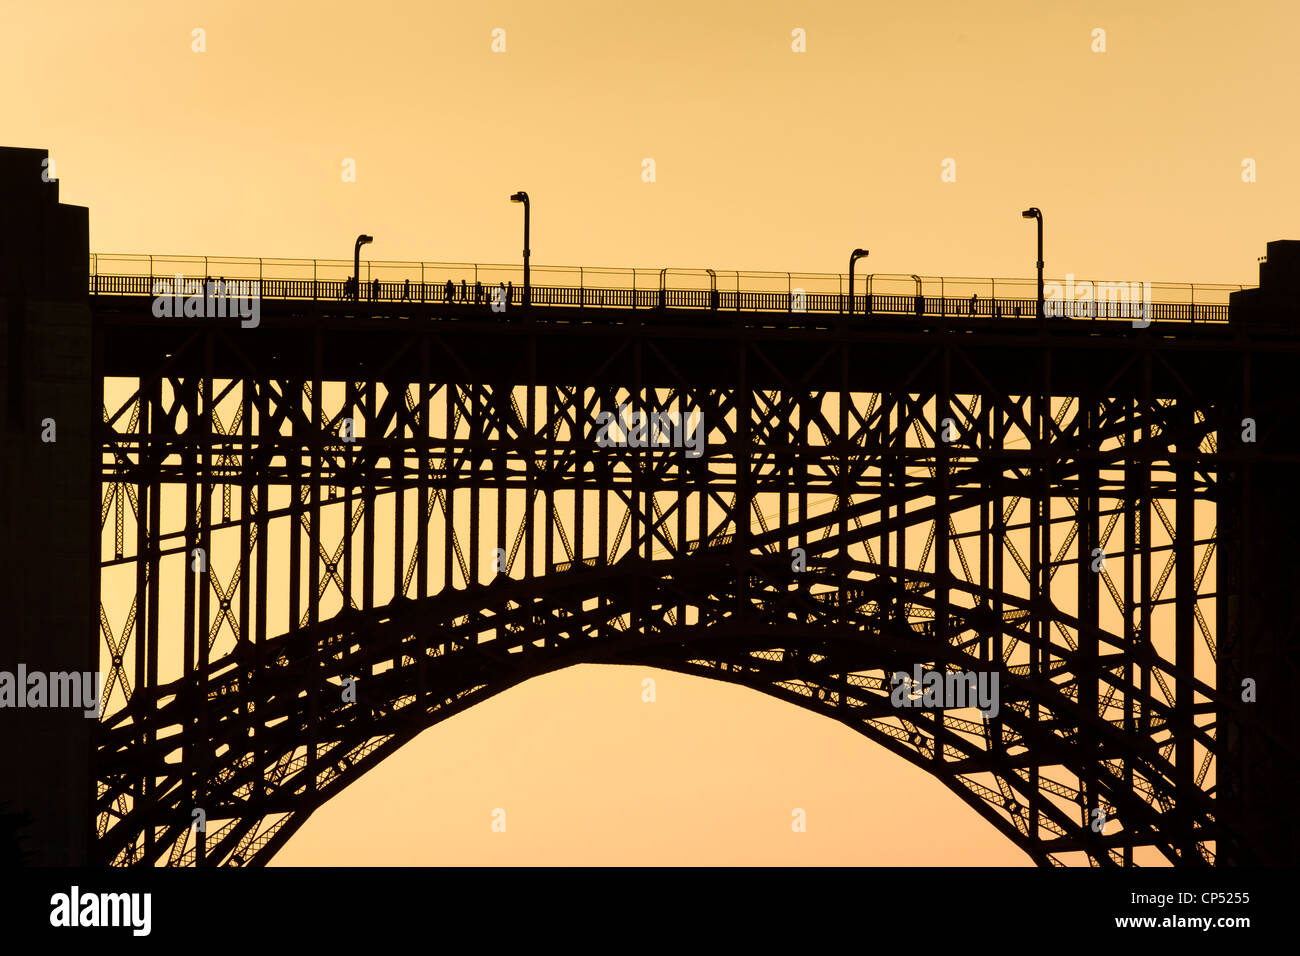 Bridge support - Stock Image